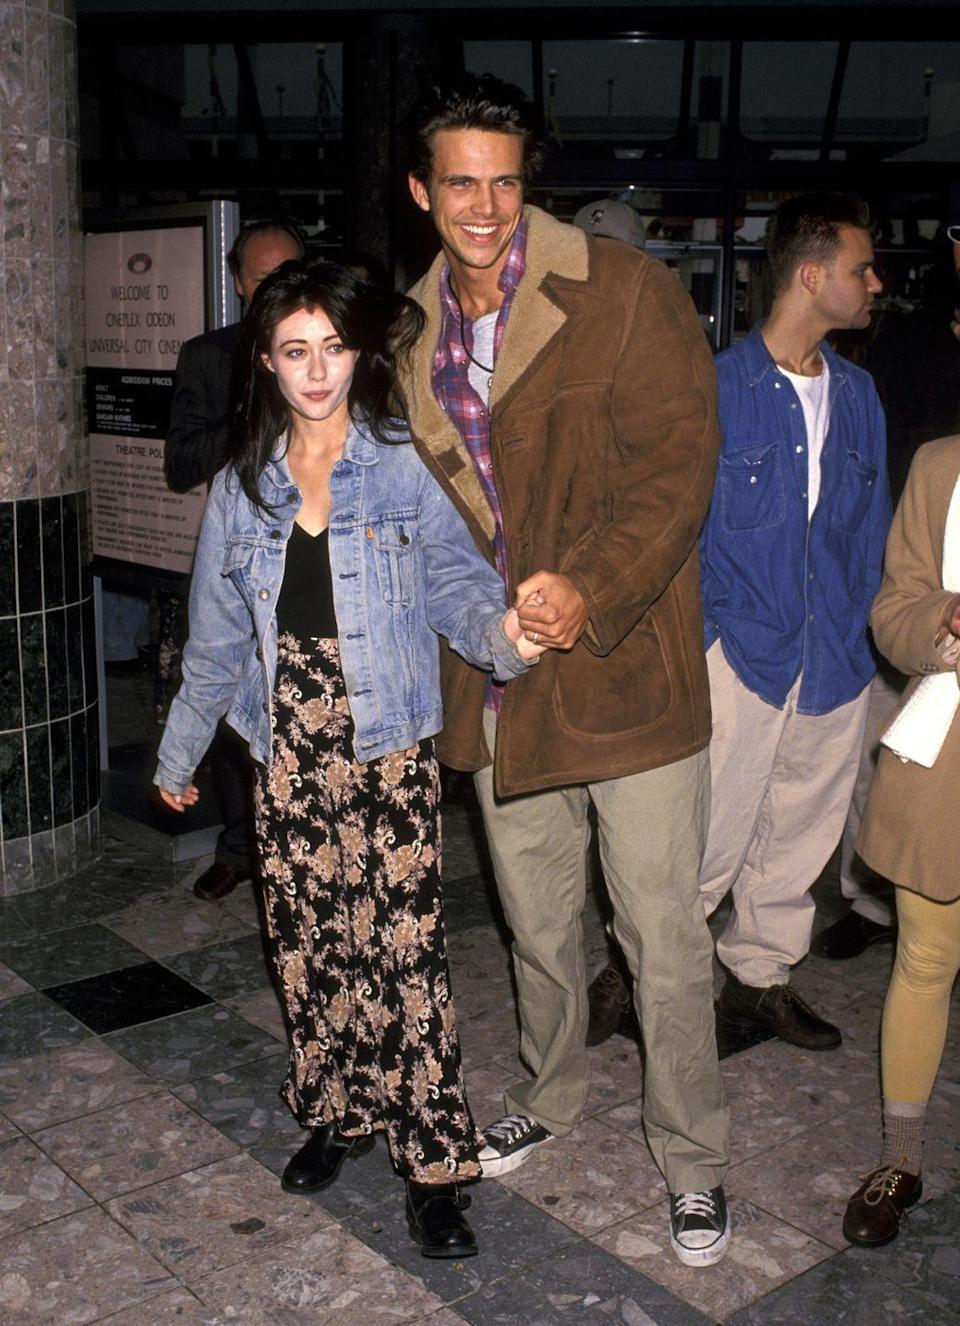 <p>The marriage of <em>90210</em> star Shannen and Ashley (son of George Hamilton) would have fit right in during 2018's Summer of Quick Love™ (see: Nick Jonas and Priyanka Chopra, Hailey Baldwin and Justin Bieber, and Ariana Grande and Pete Davidson). Shannen and Ashley tied the knot after only two weeks of dating in 1994 but divorced five months later.</p>